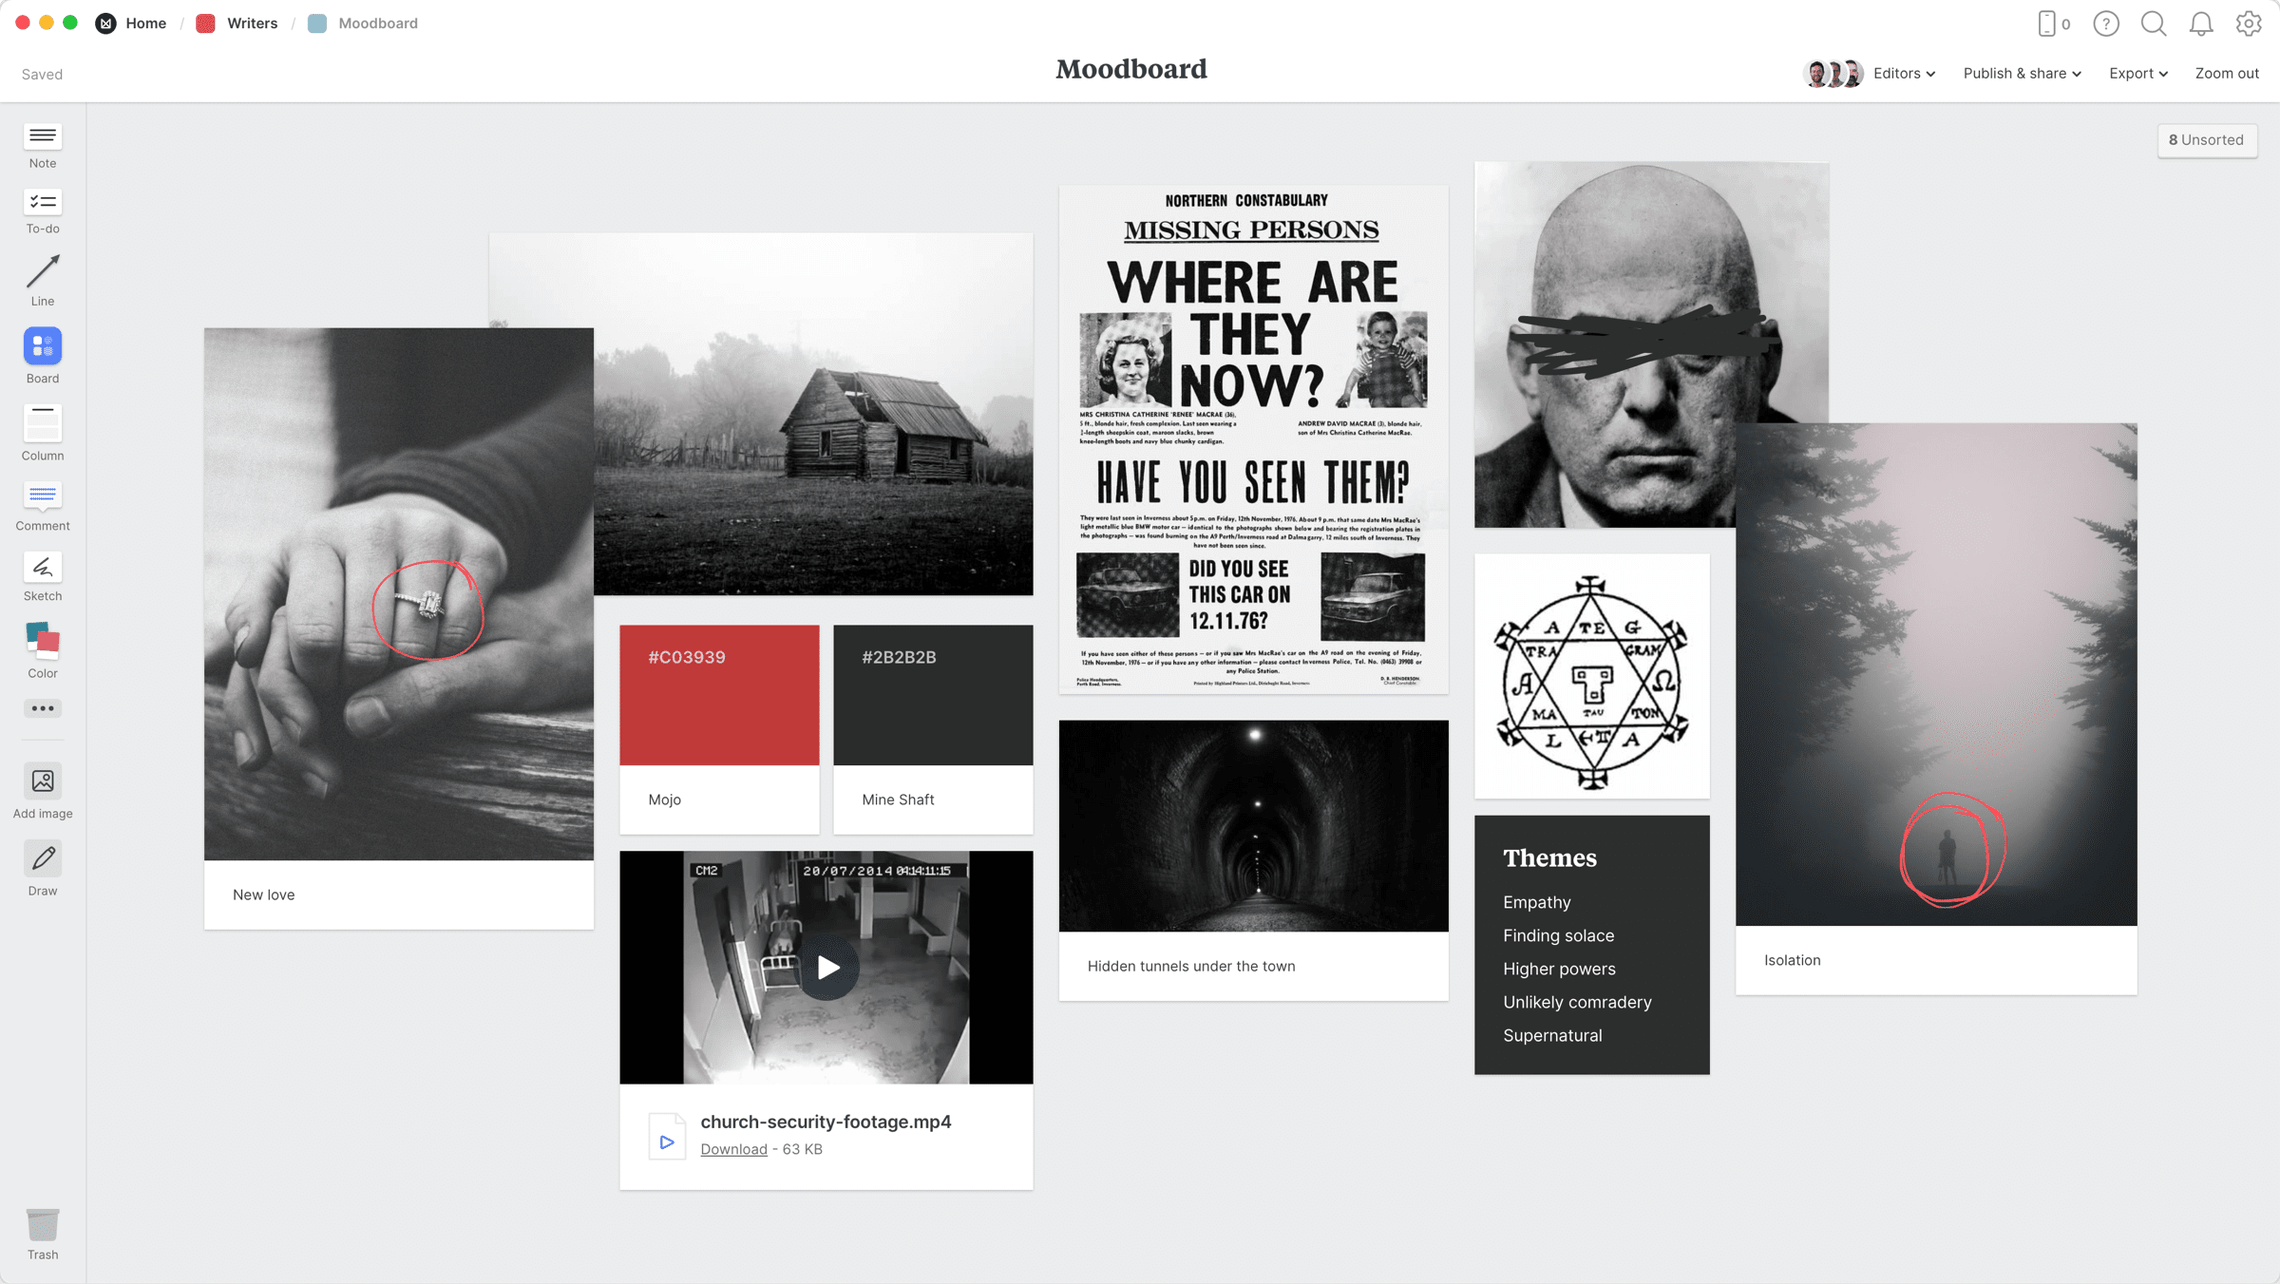 Novel Moodboard Template, within the Milanote app